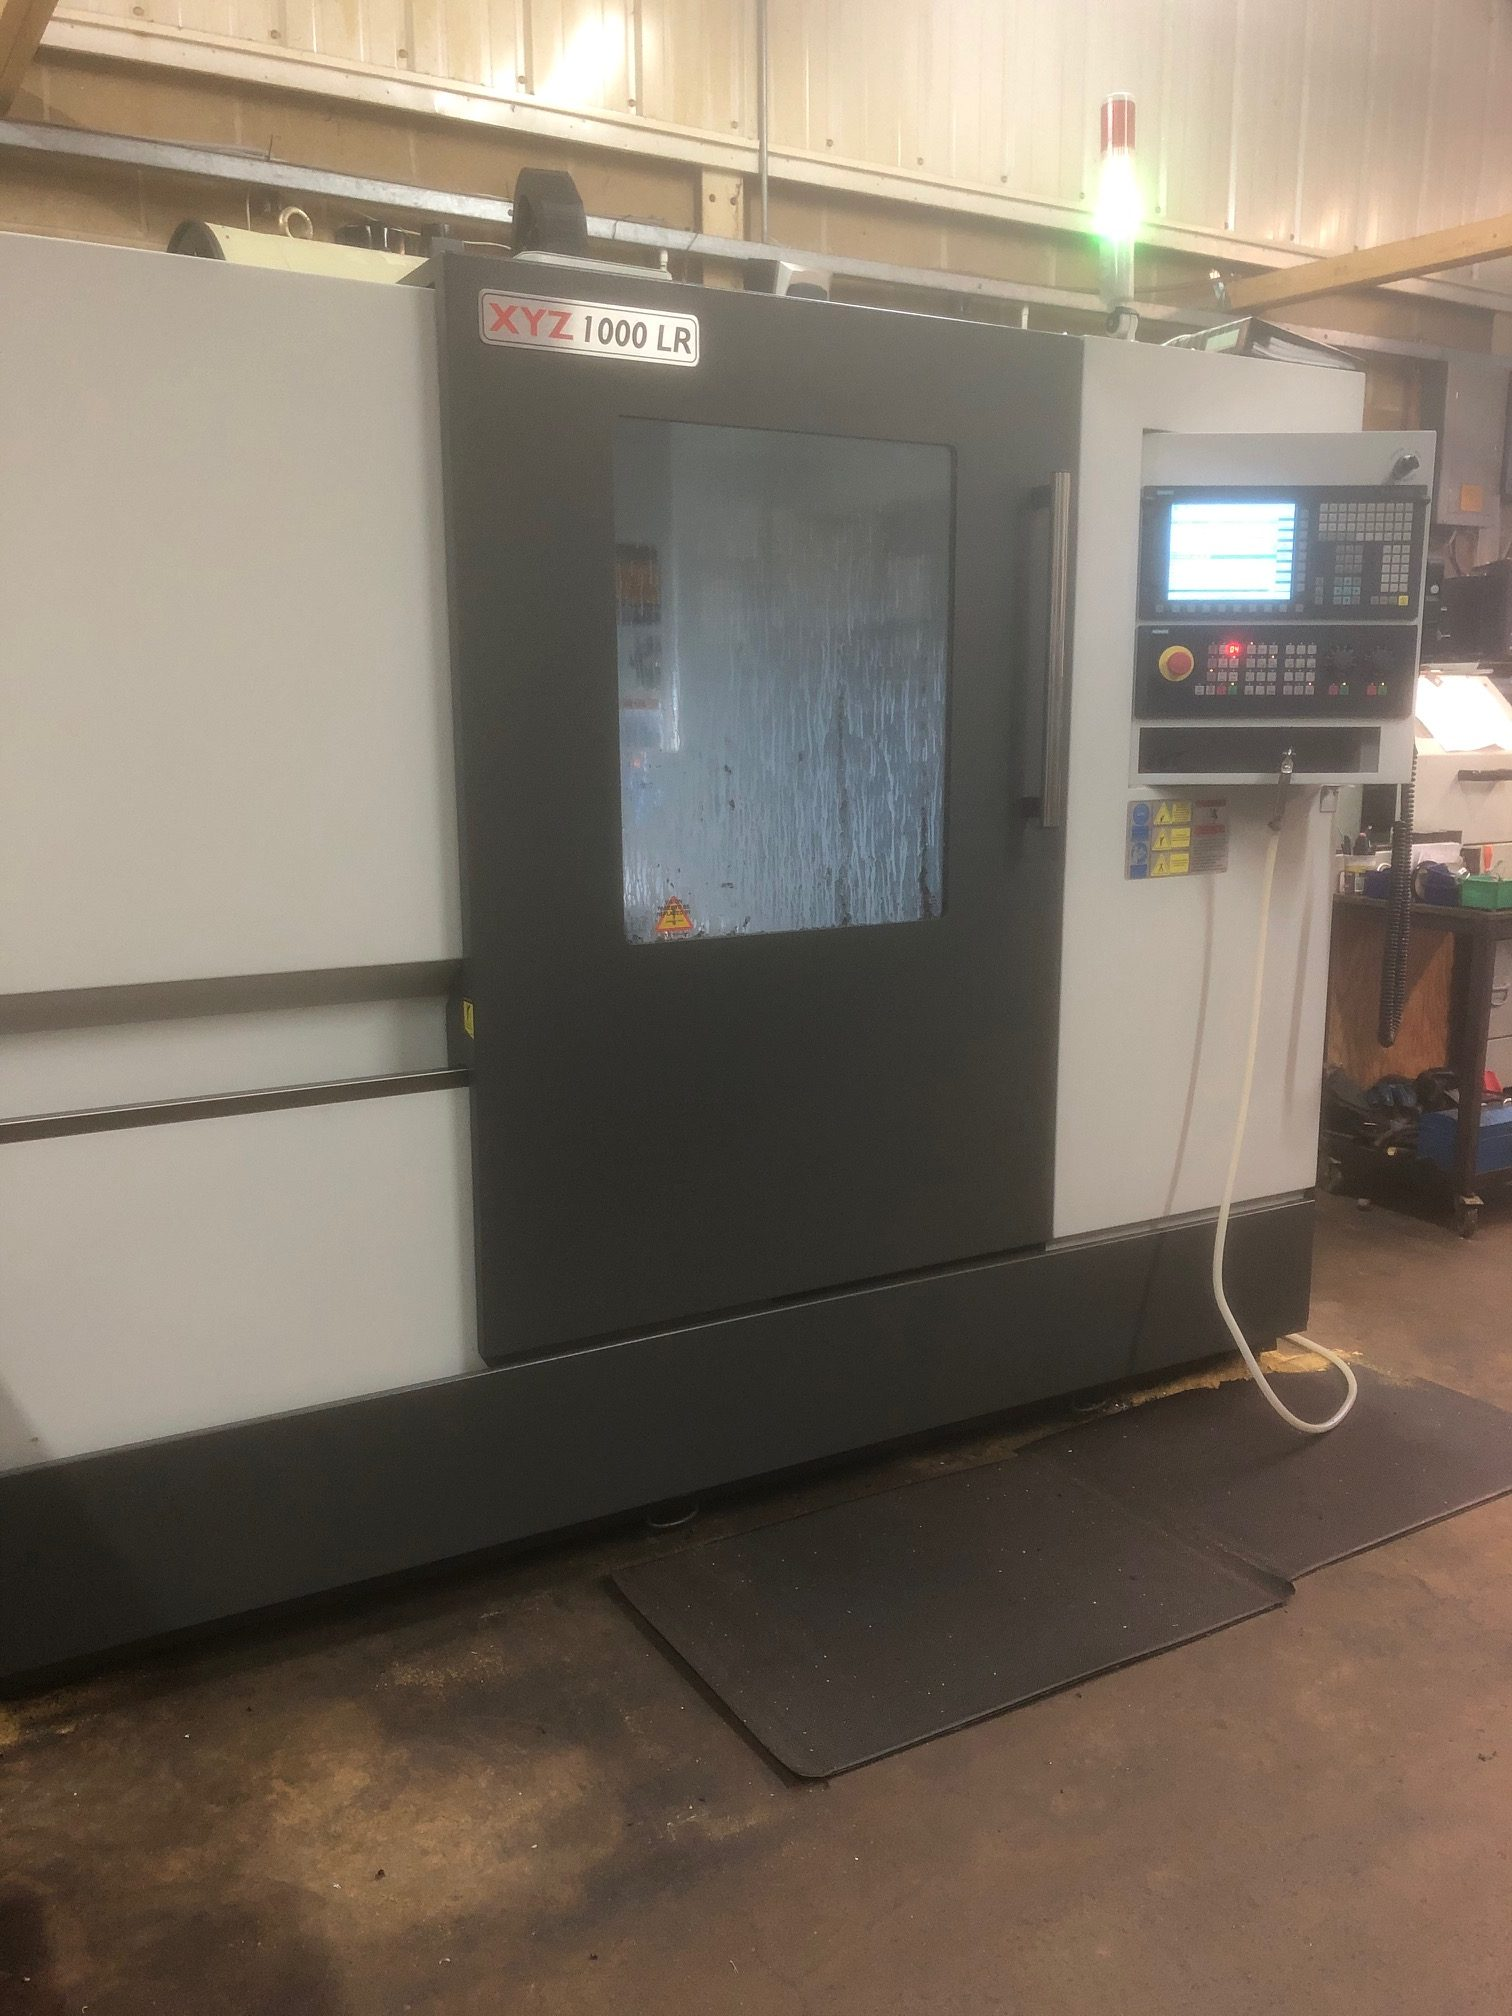 1000 LR vertical Milling machine from Fort Precision